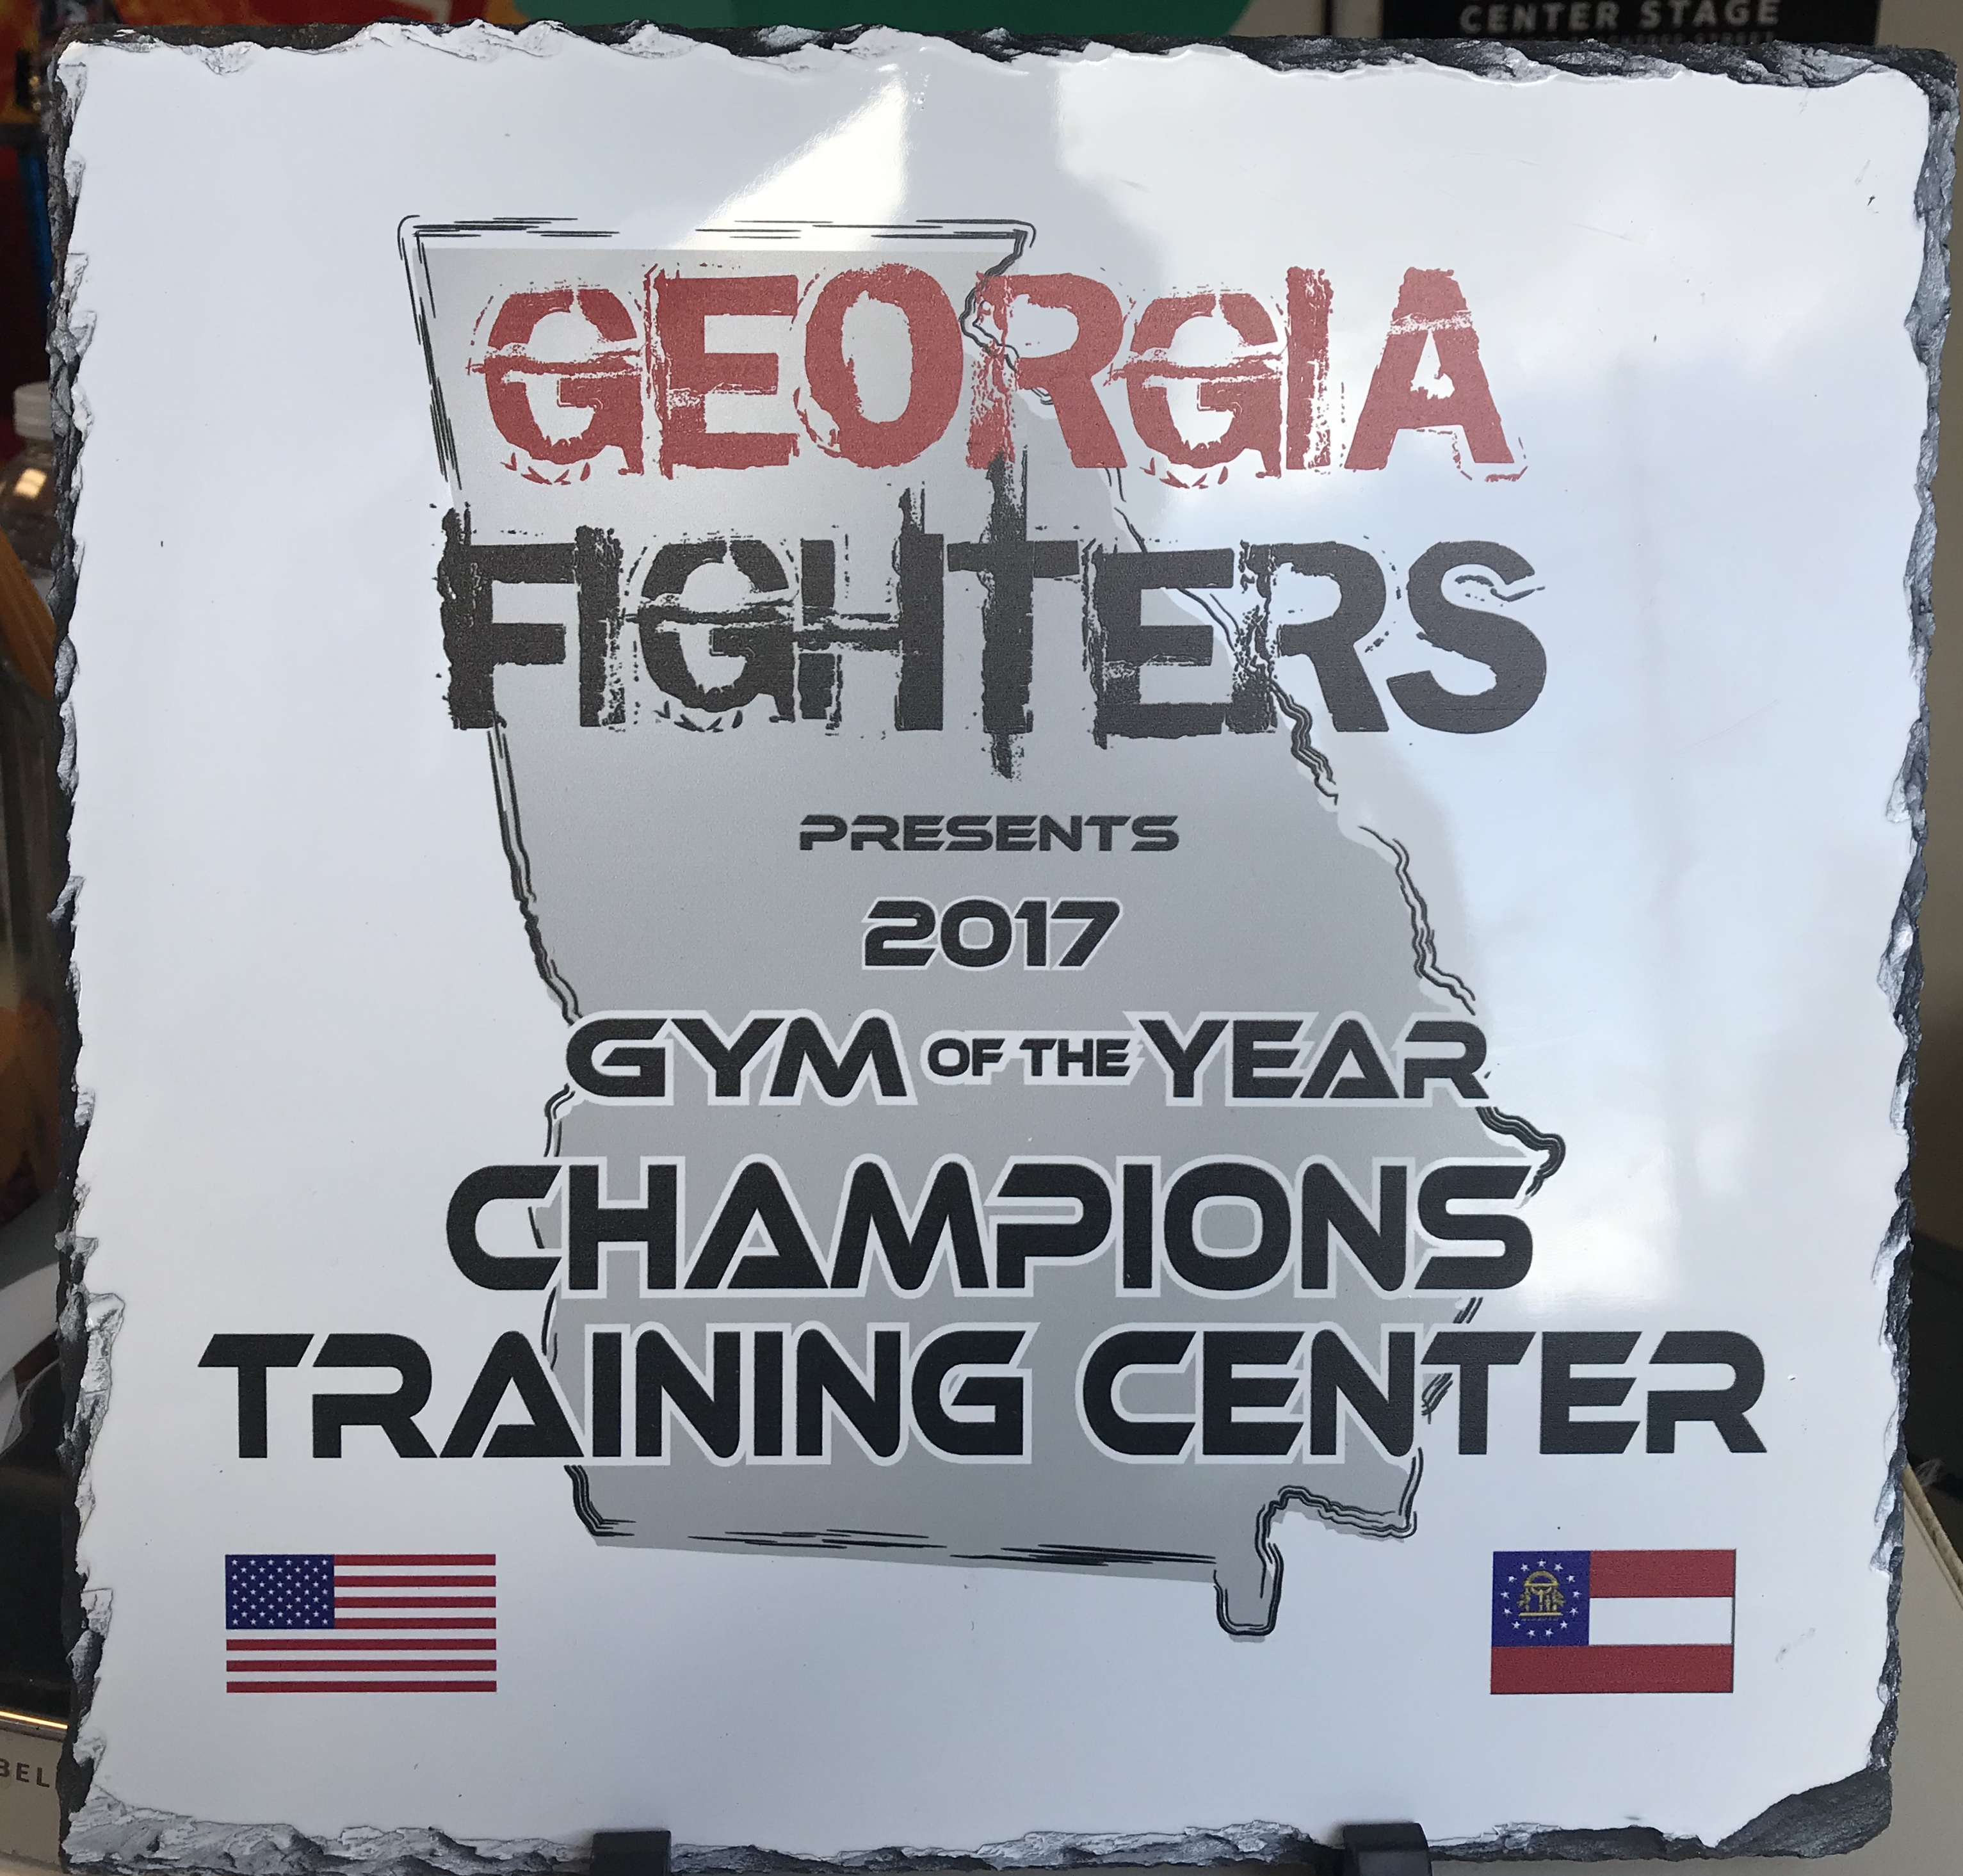 Gym of the year